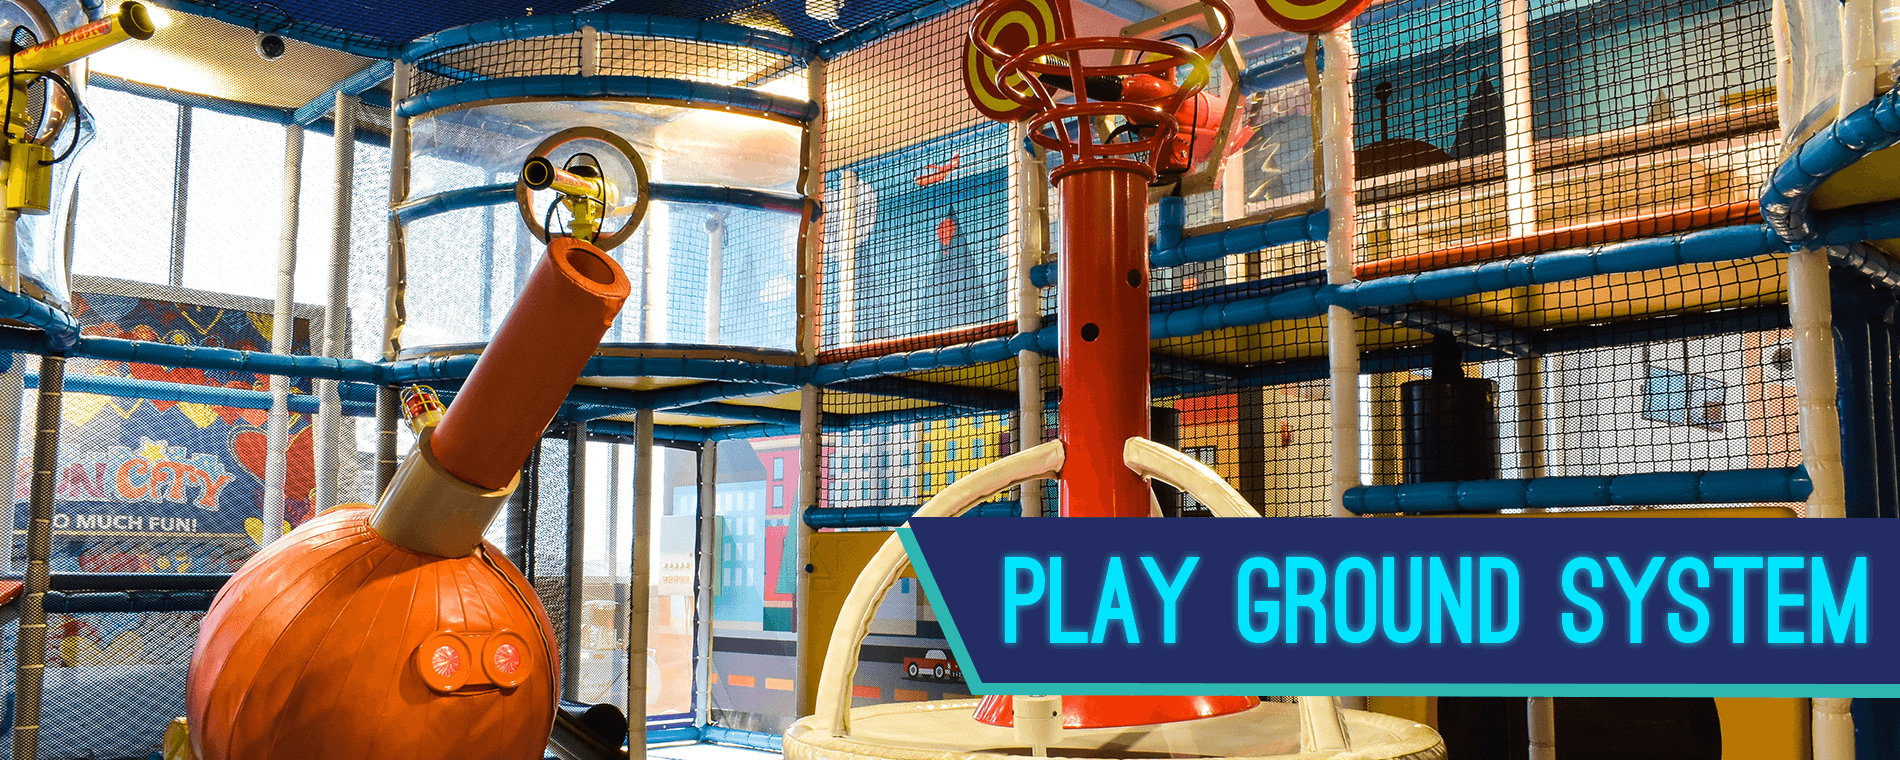 Play Ground System- WEB BANNER